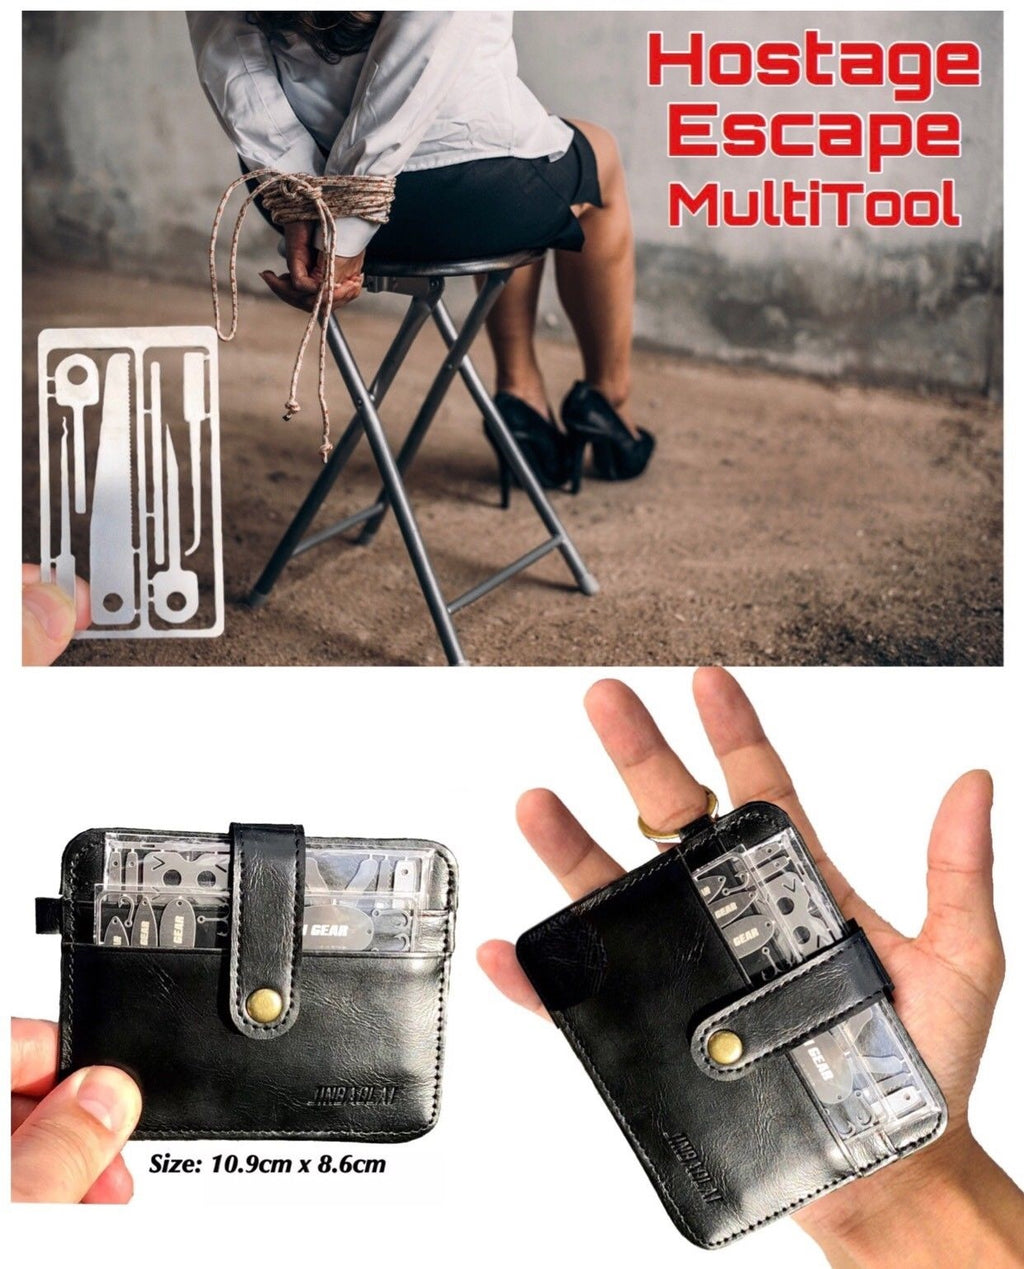 LEATHER WALLET SURVIVAL SET 4 Sleeve Survival Hostage Escape Multi Tool Set - Outback Tactical